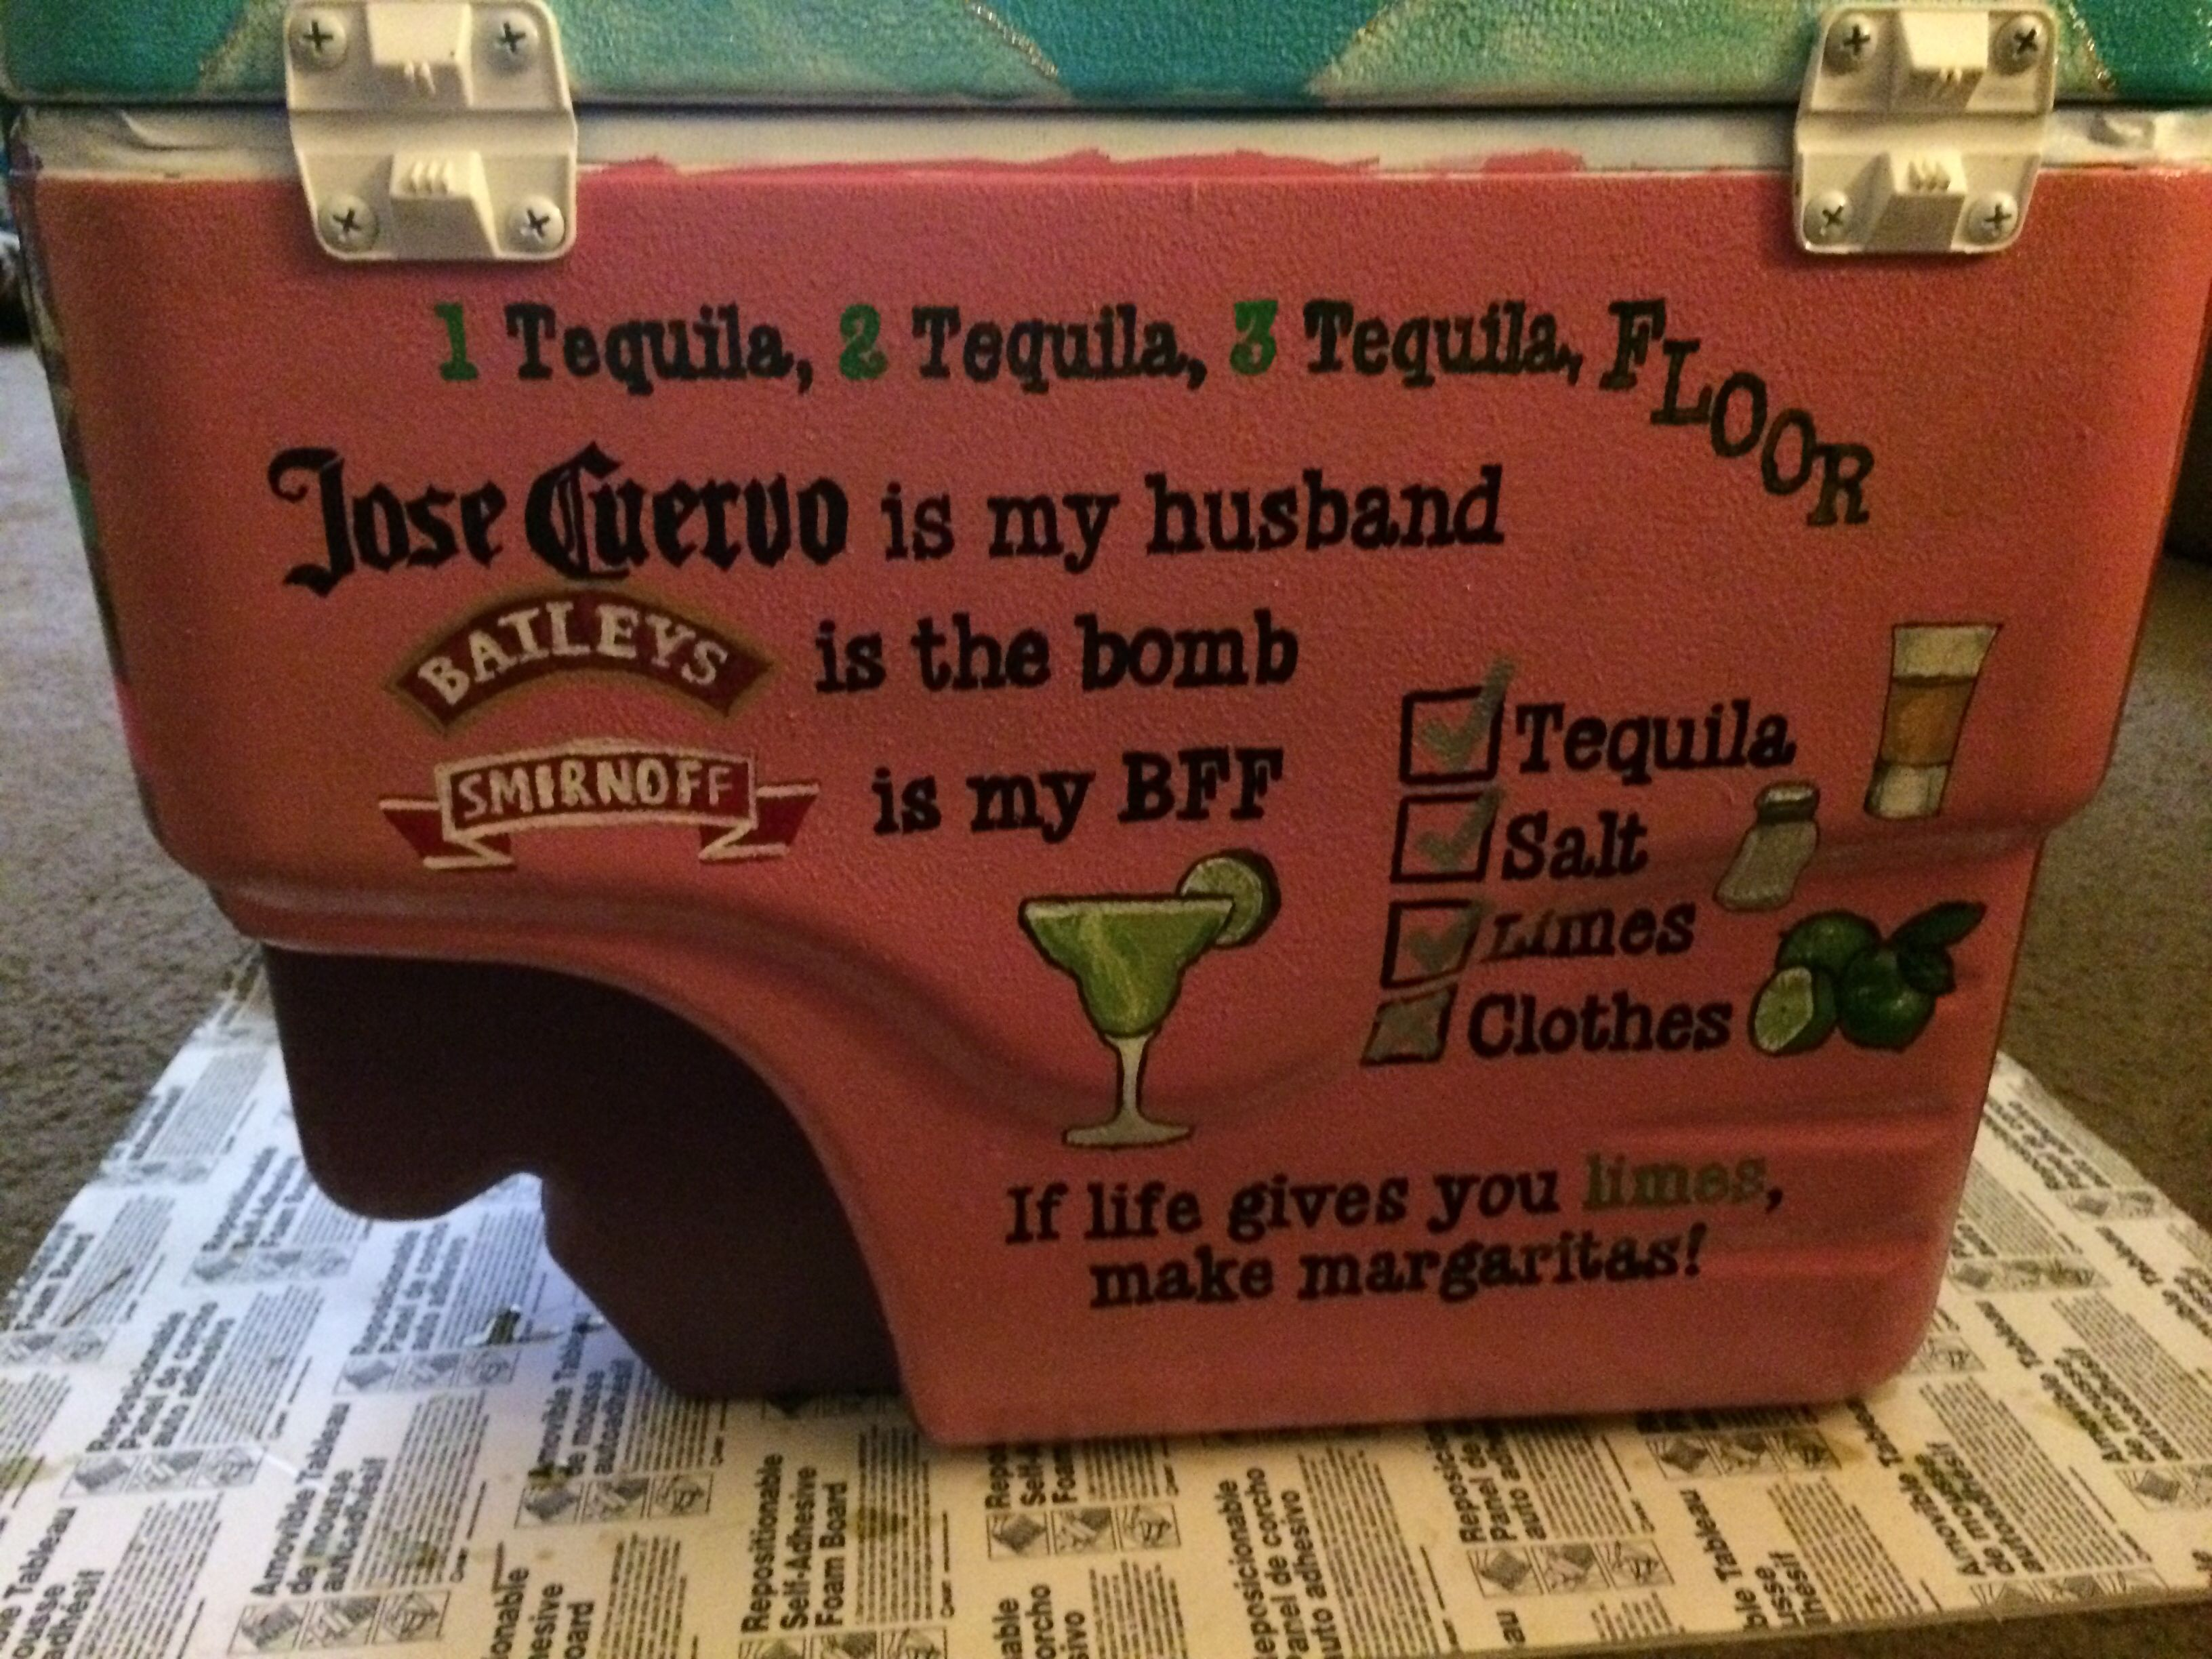 The Cooler I Painted For My Lime Obsessed Little 1 Tequila 2 Tequila 3 Tequila Floor If Lif Birthday Ideas For Her How To Make Margaritas Tequila Margarita